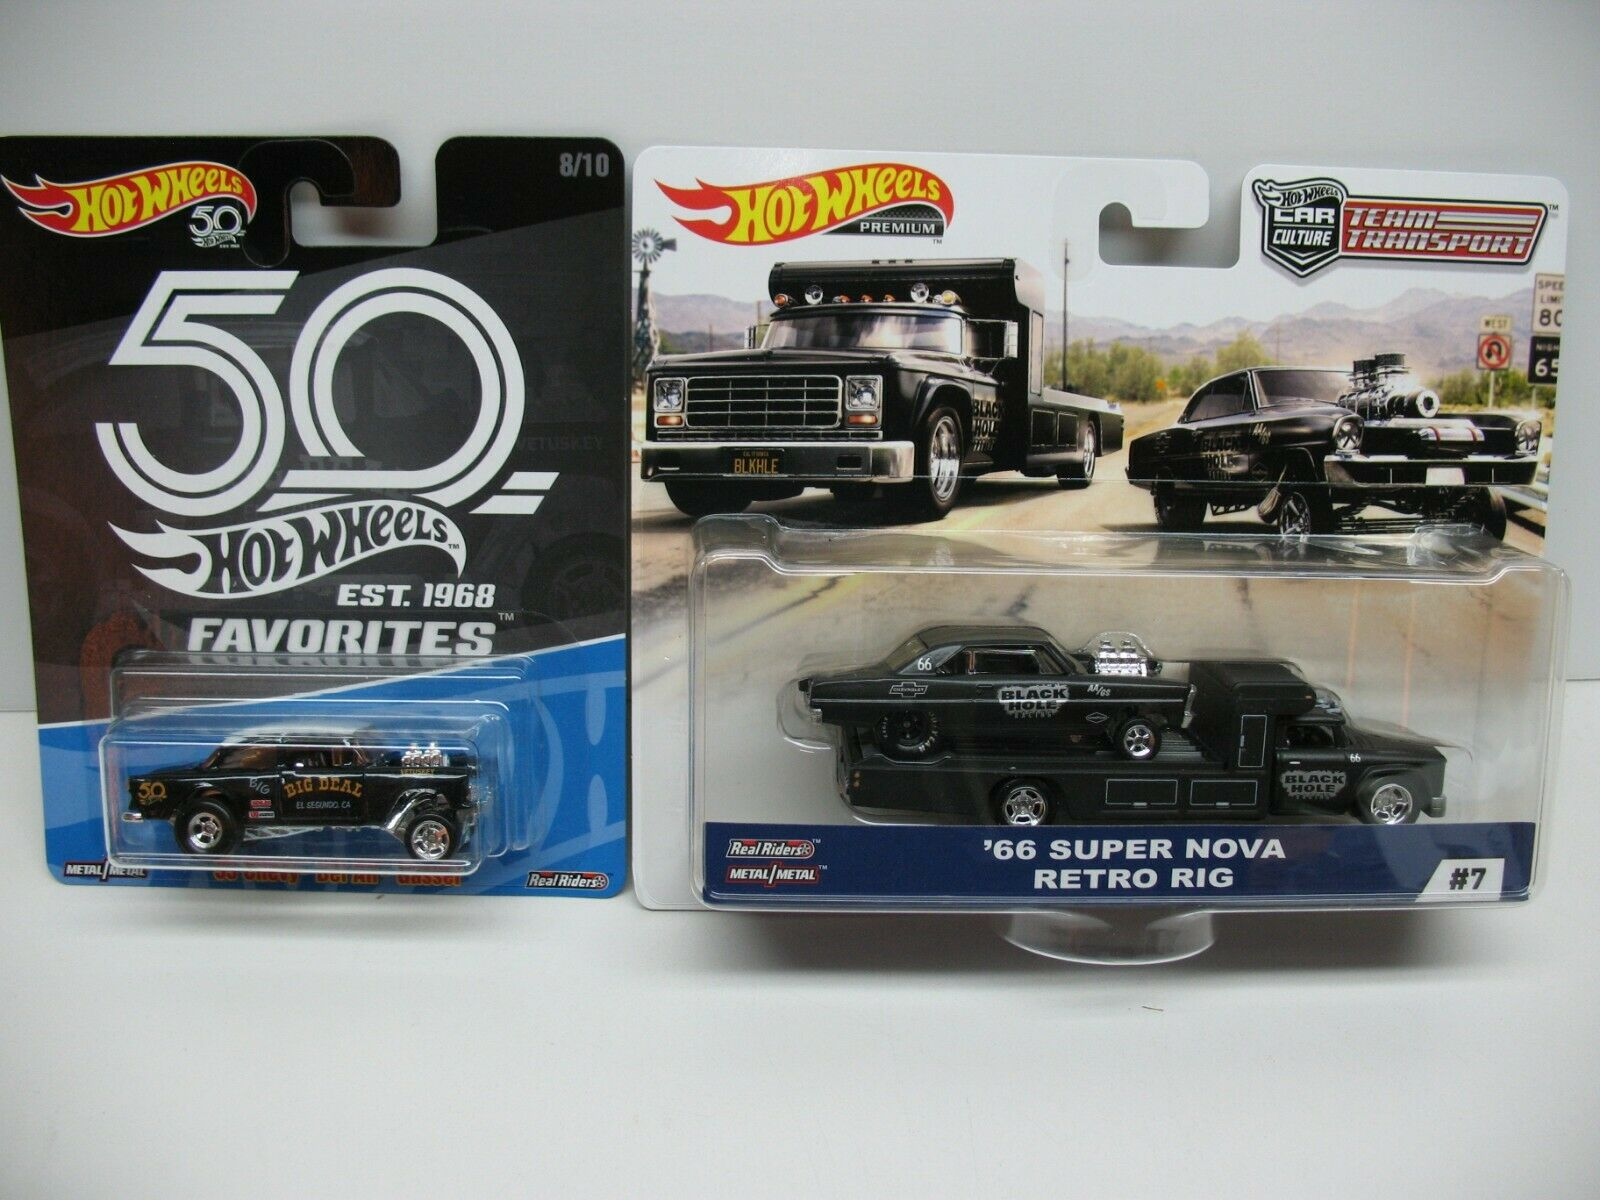 HOT WHEELS FAVORITES '55 CHEVY BEL-AIR GASSER & '66 SUPER NOVA RETRO RIG BLACK